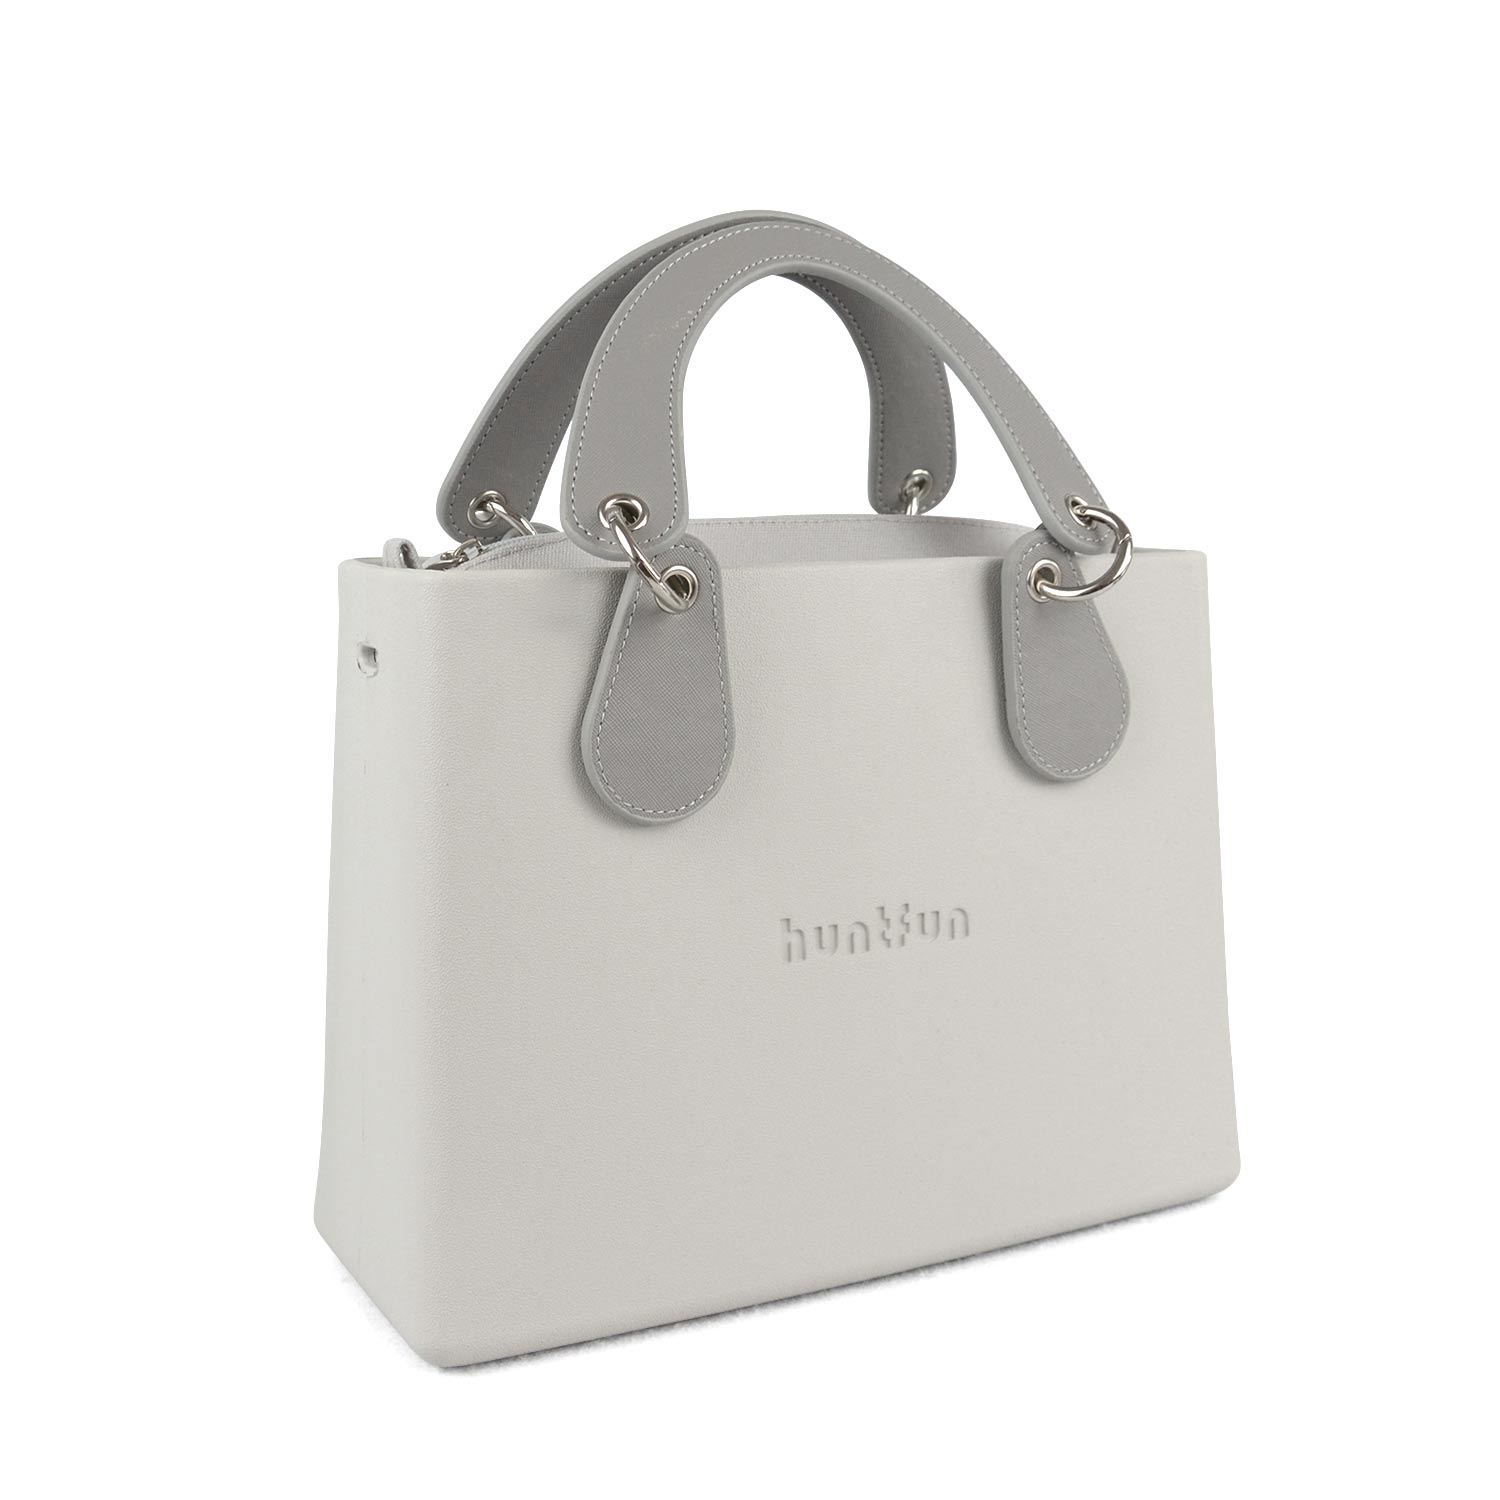 New huntfun Logo EVA Waterproof Square Bag O Bag Style Handbag with Removable Concise Curved Drop